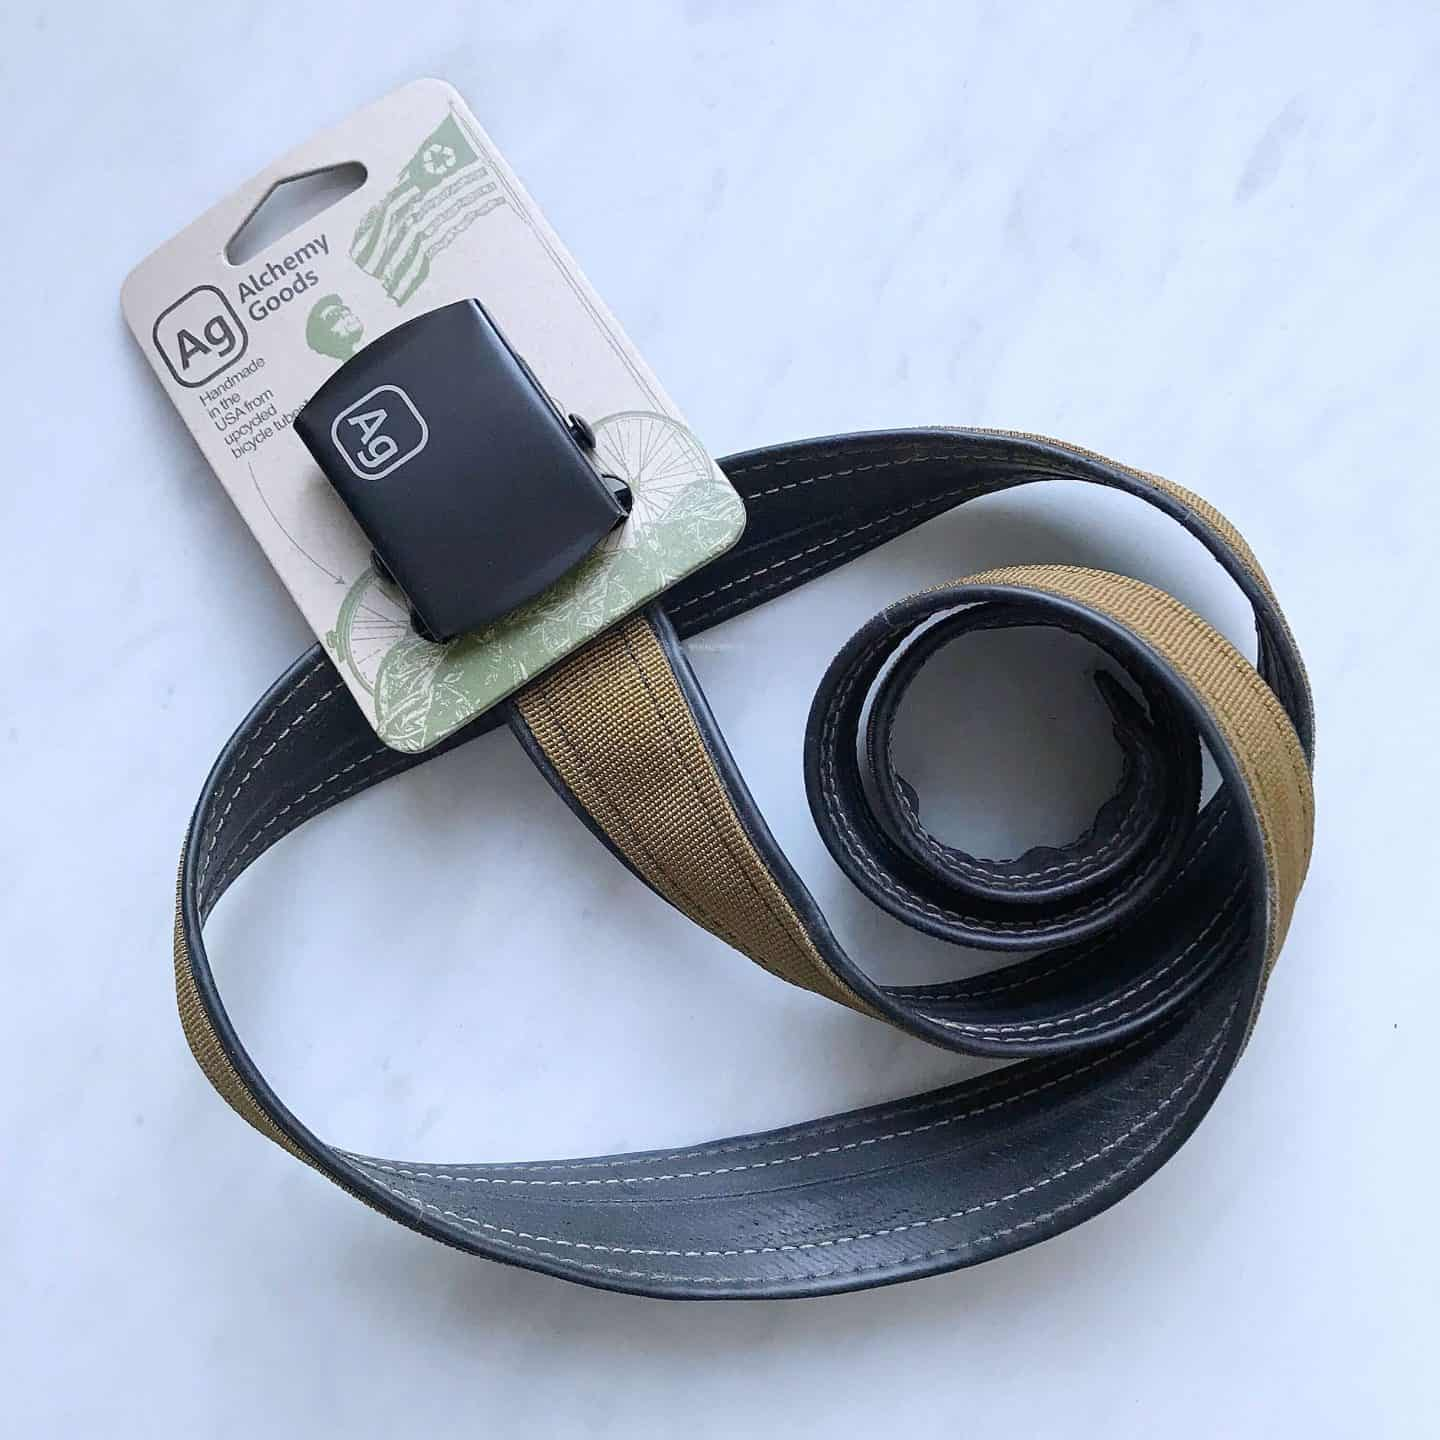 Alchemy Goods recycled black and brown belt from Uncommon Goods